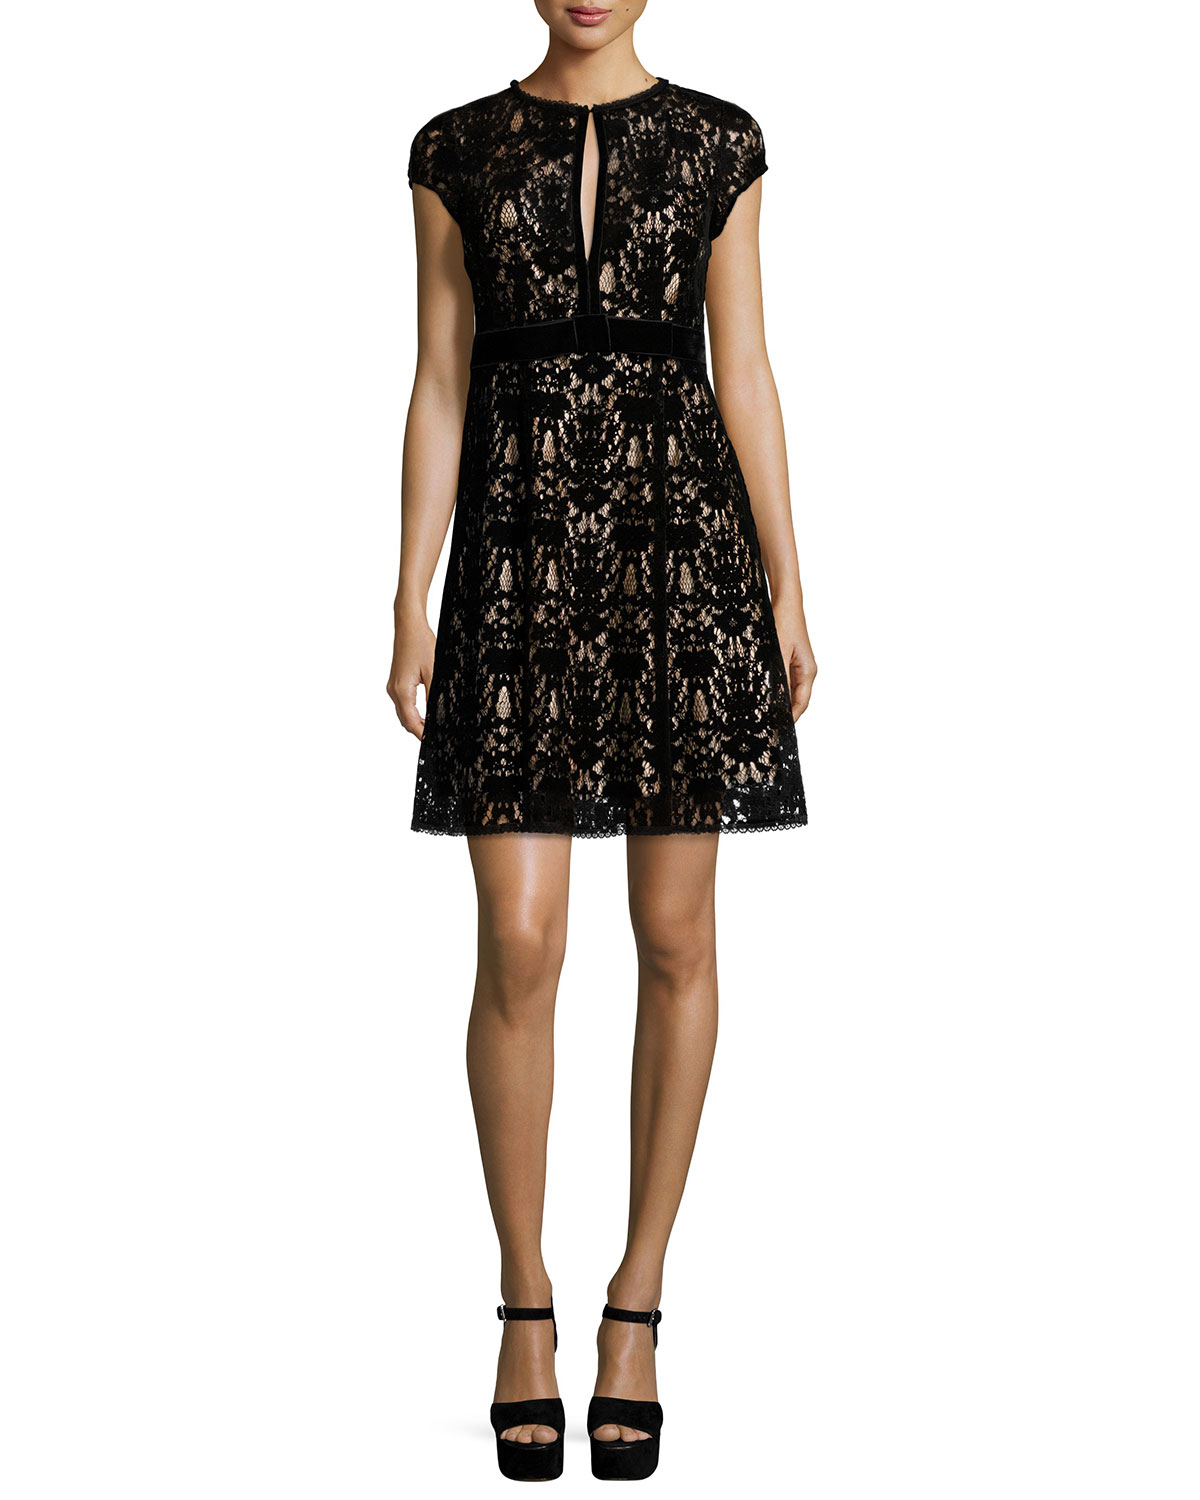 Cap-Sleeve Lace Keyhole Cocktail Dress, Black